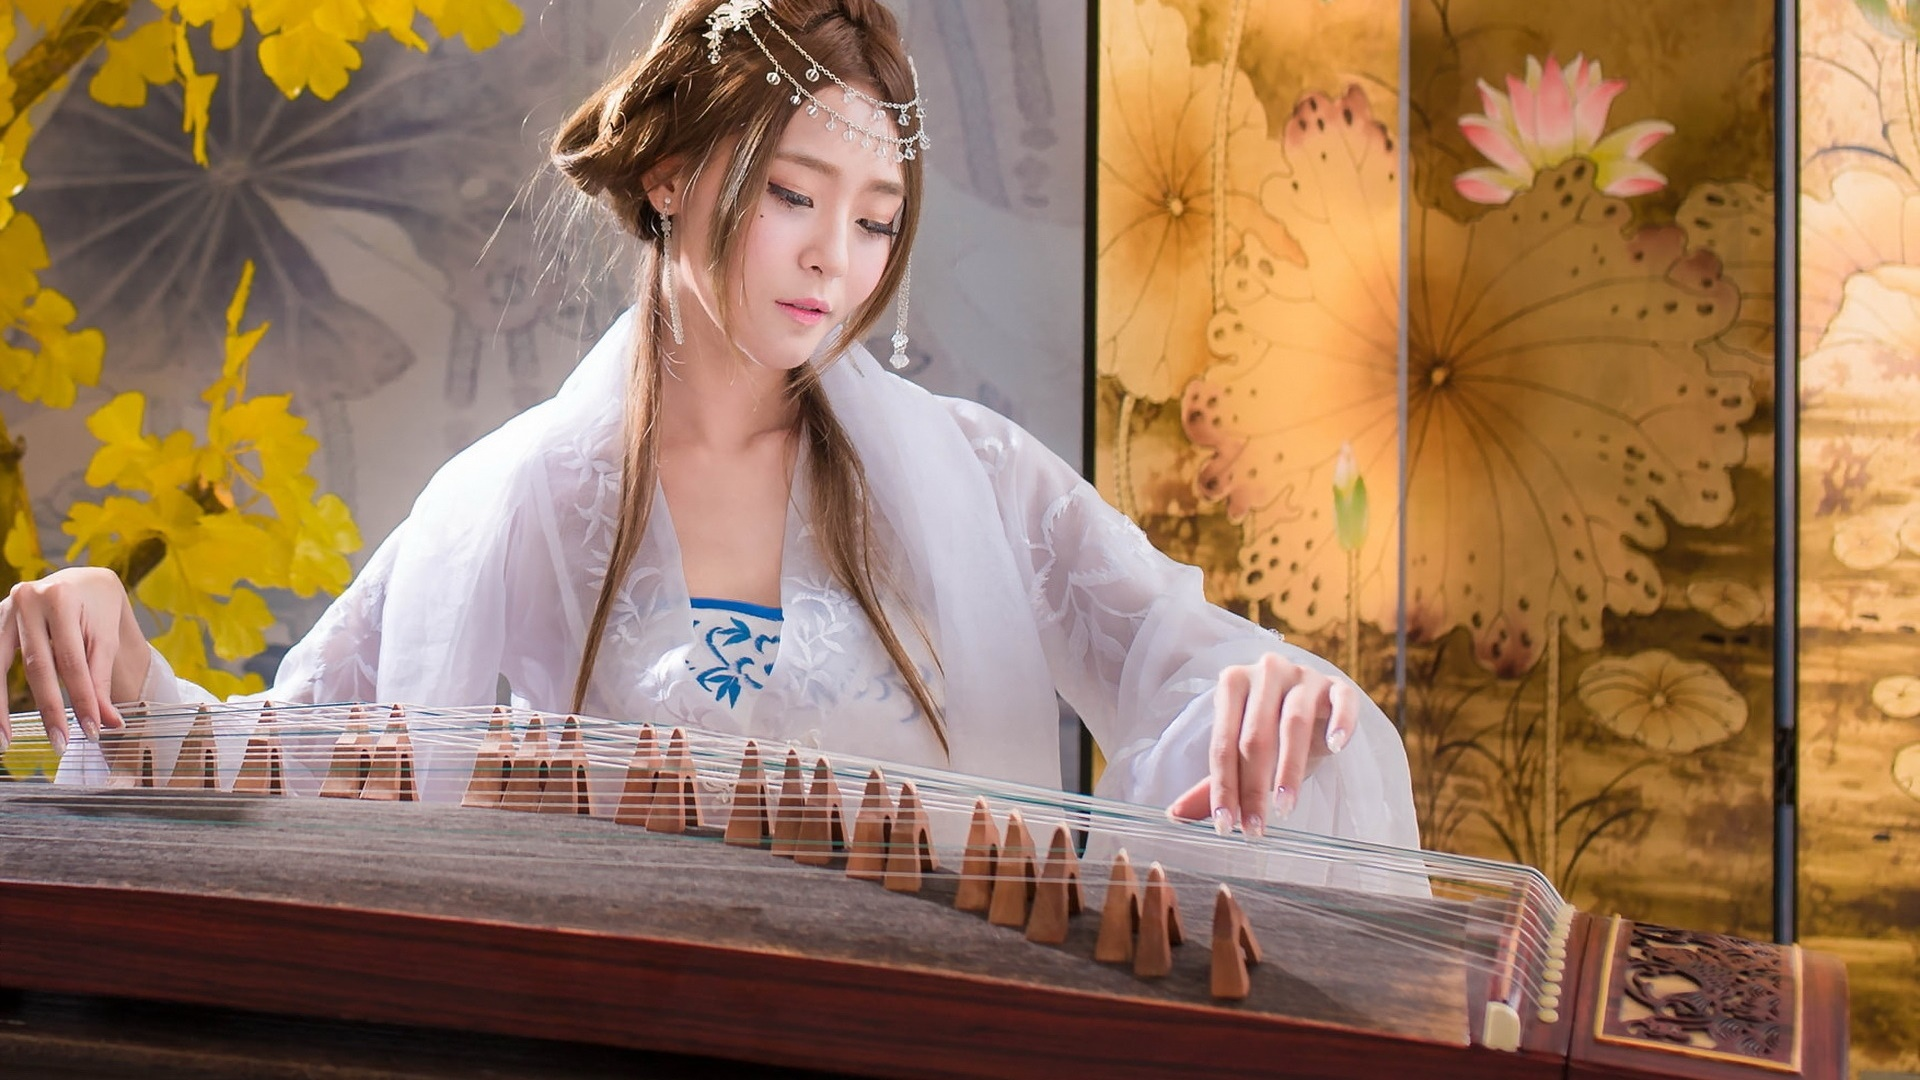 Chinese girl playing zither Desktop Wallpaper 1920x1080 1920x1080